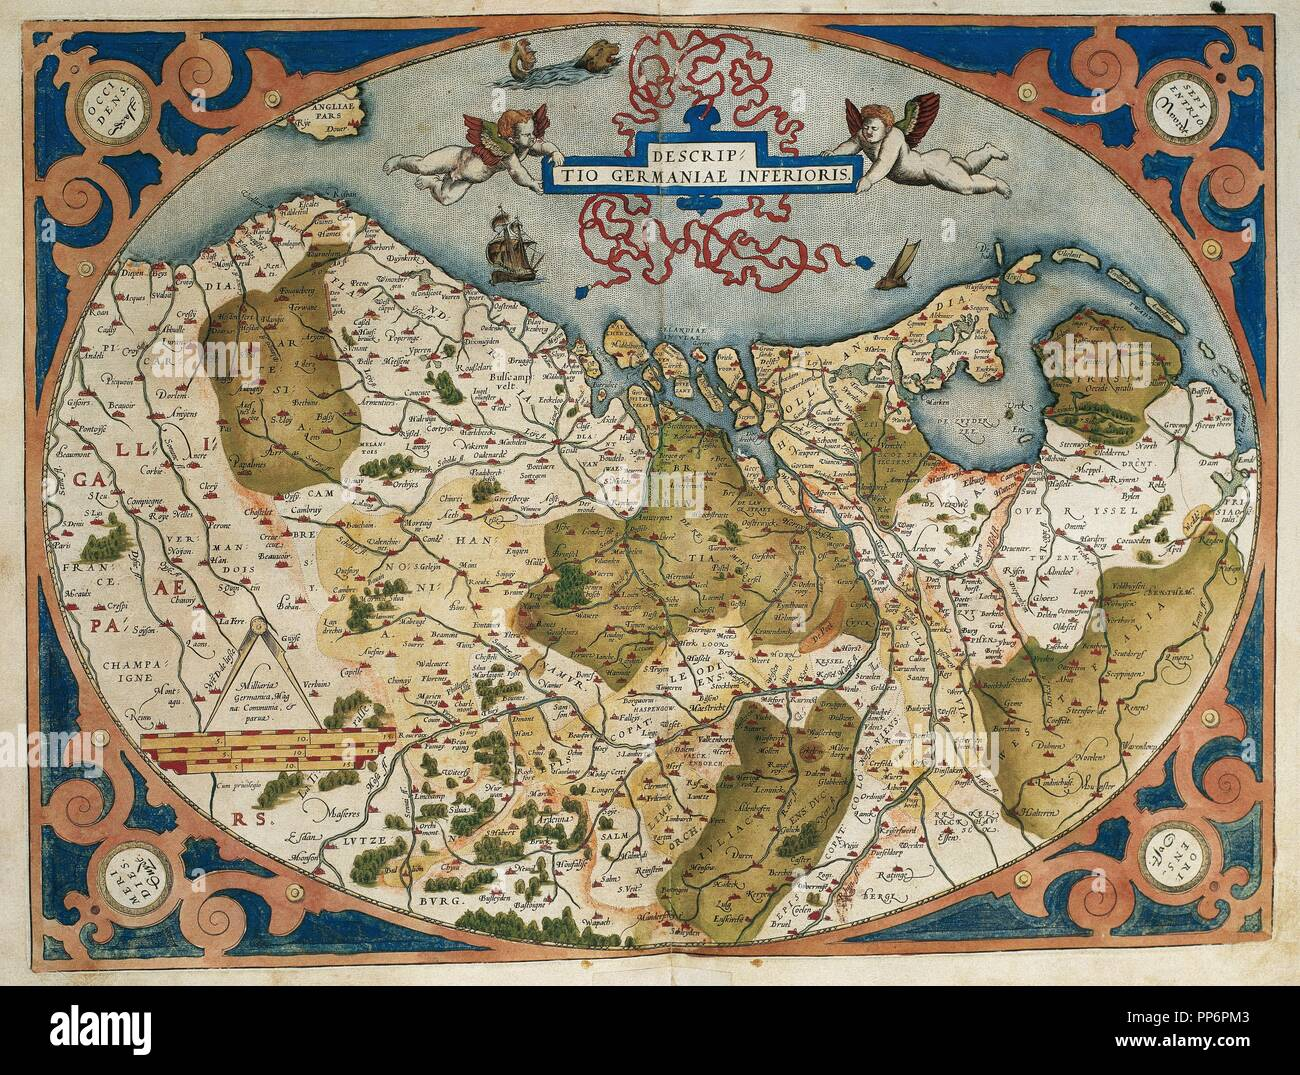 Current Map Of Germany.Map Of Germany And Current Netherlands Theatrum Orbis Terrarum By